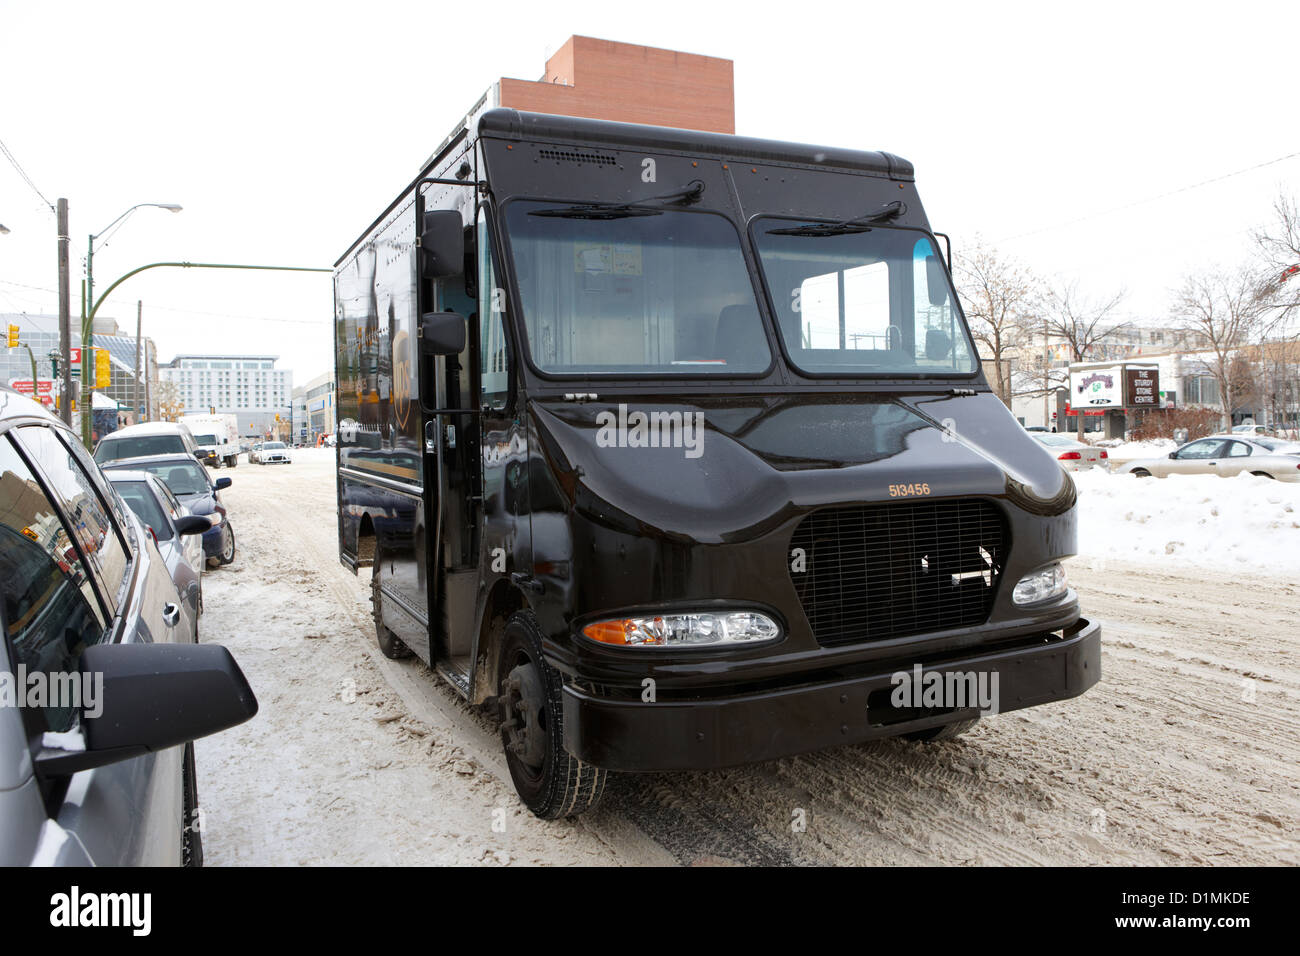 ups delivery truck double parked on street in cold weather Saskatoon Saskatchewan Canada - Stock Image